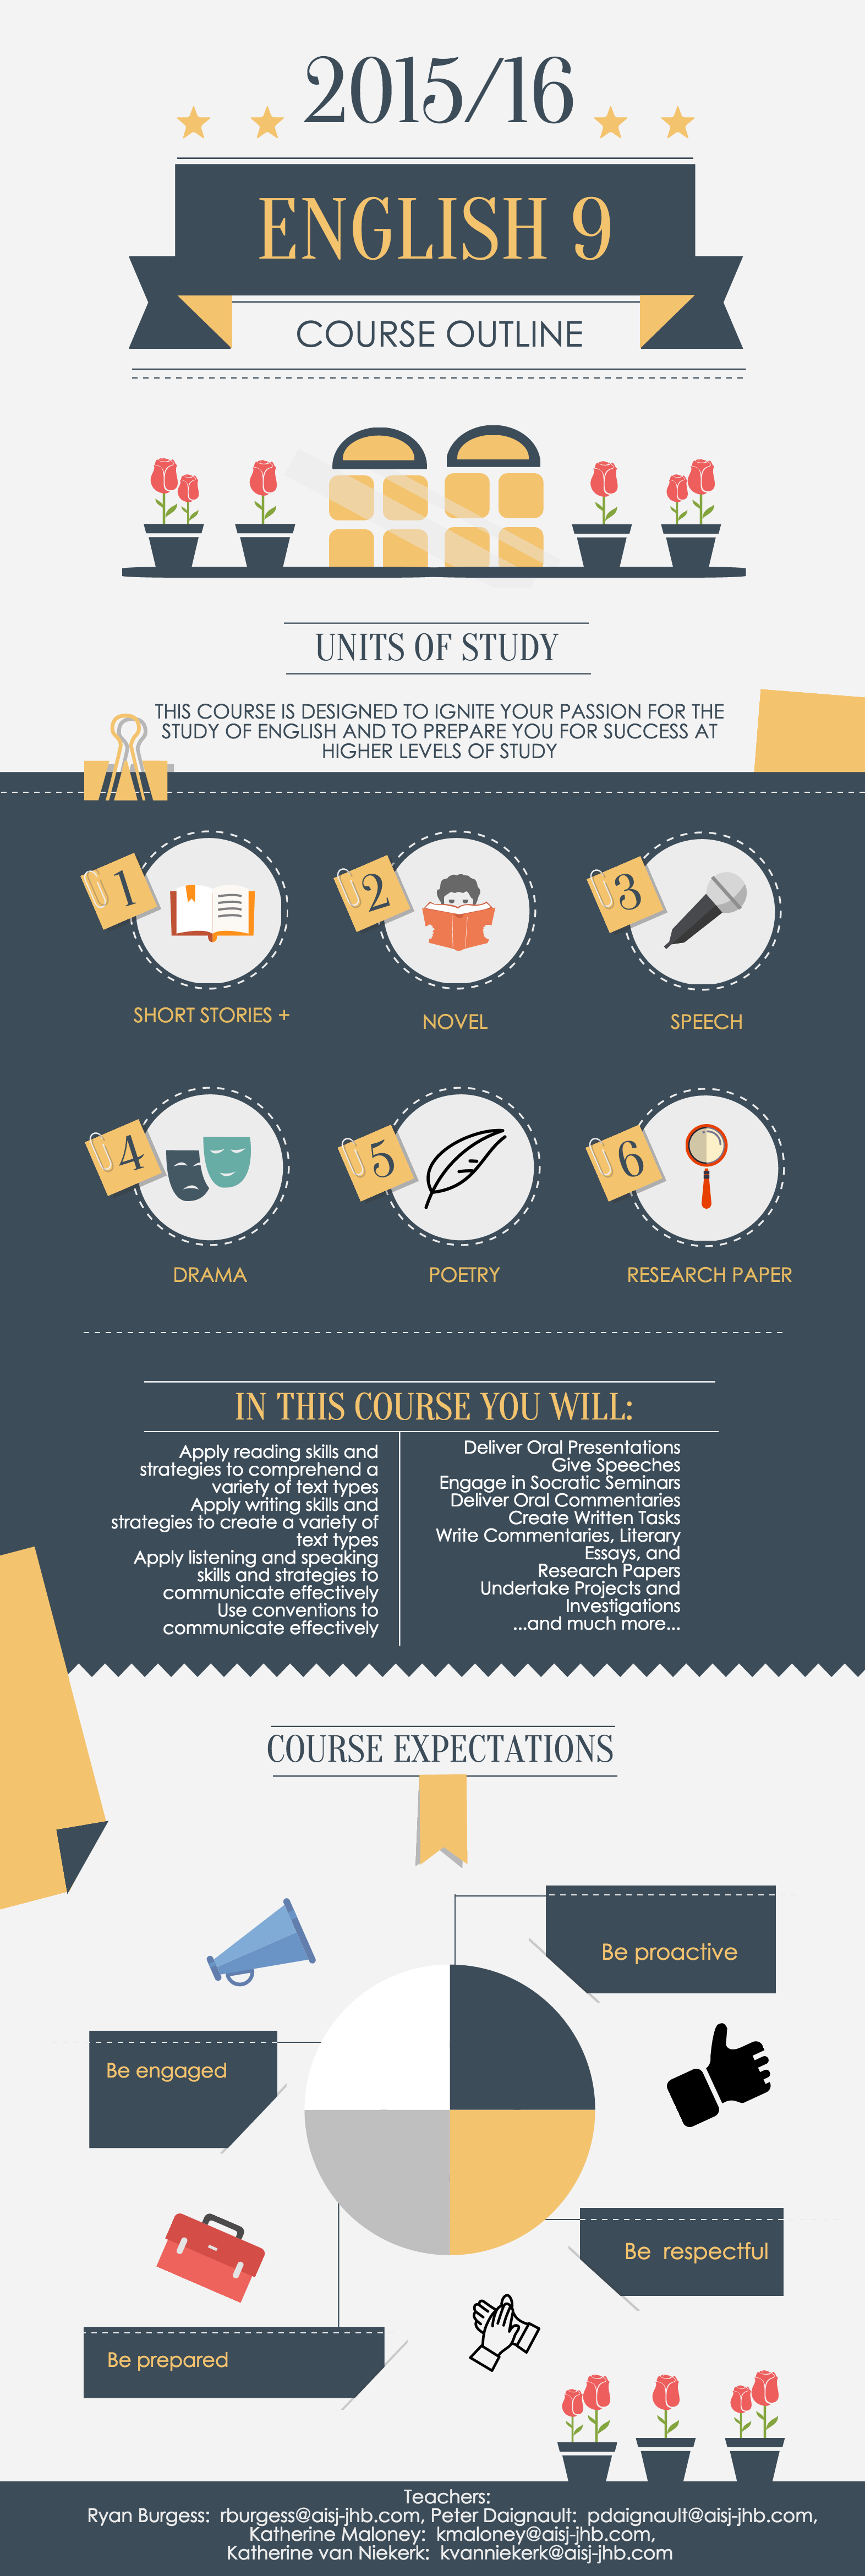 how to create appealing syllabus